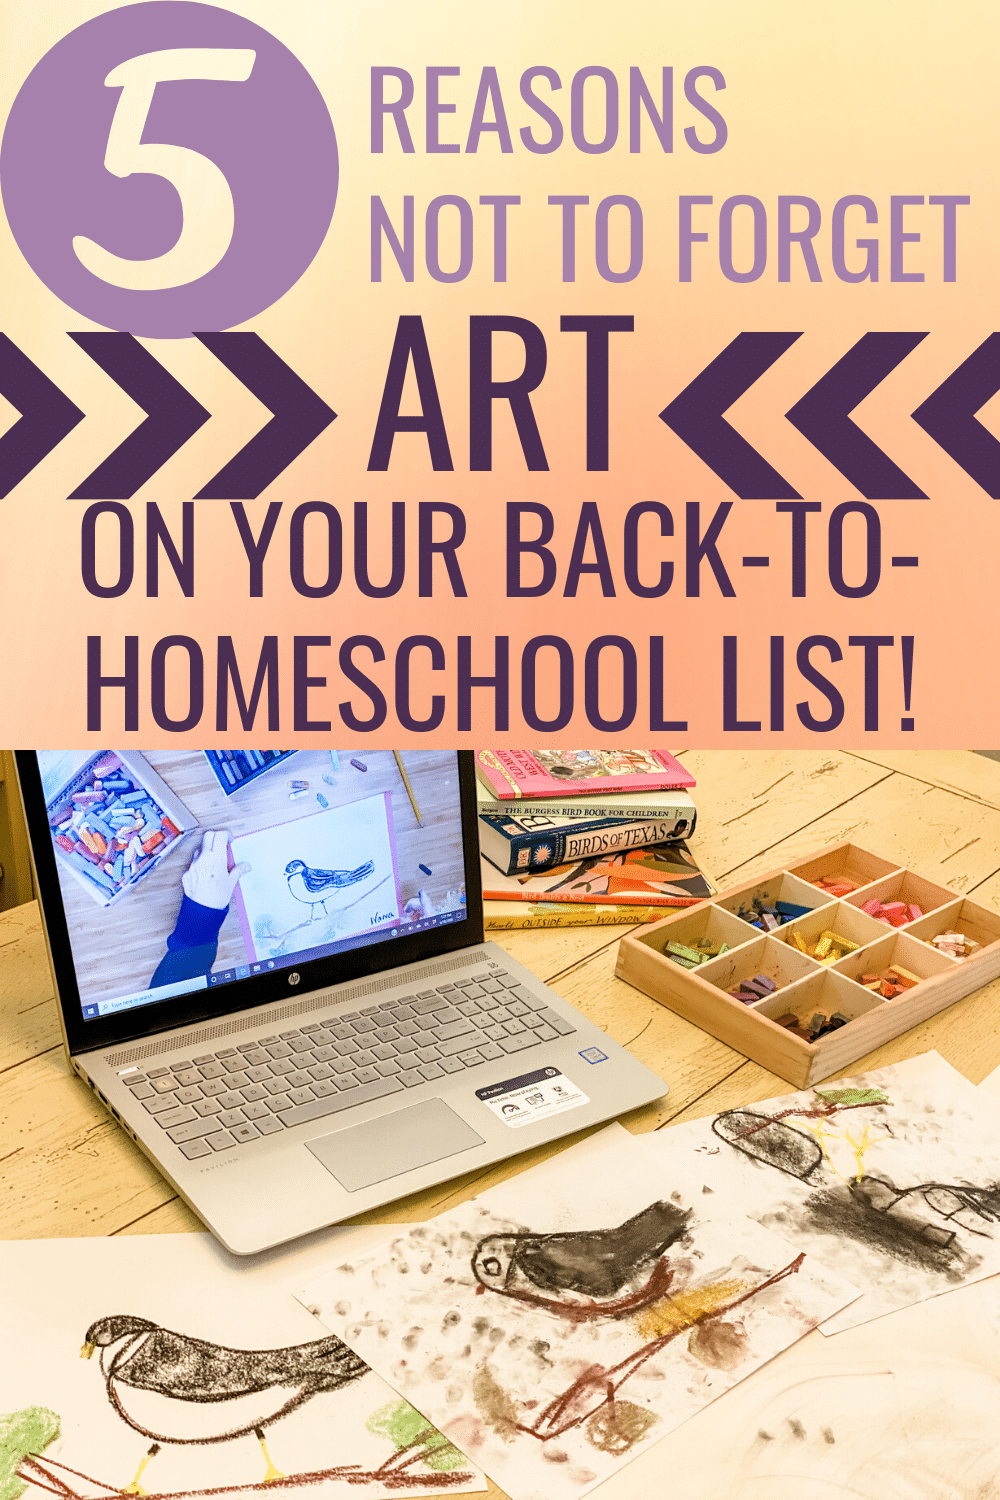 Creativity is essential to your homeschool's health. Here are five reasons not to forget art on your back to homeschool list.